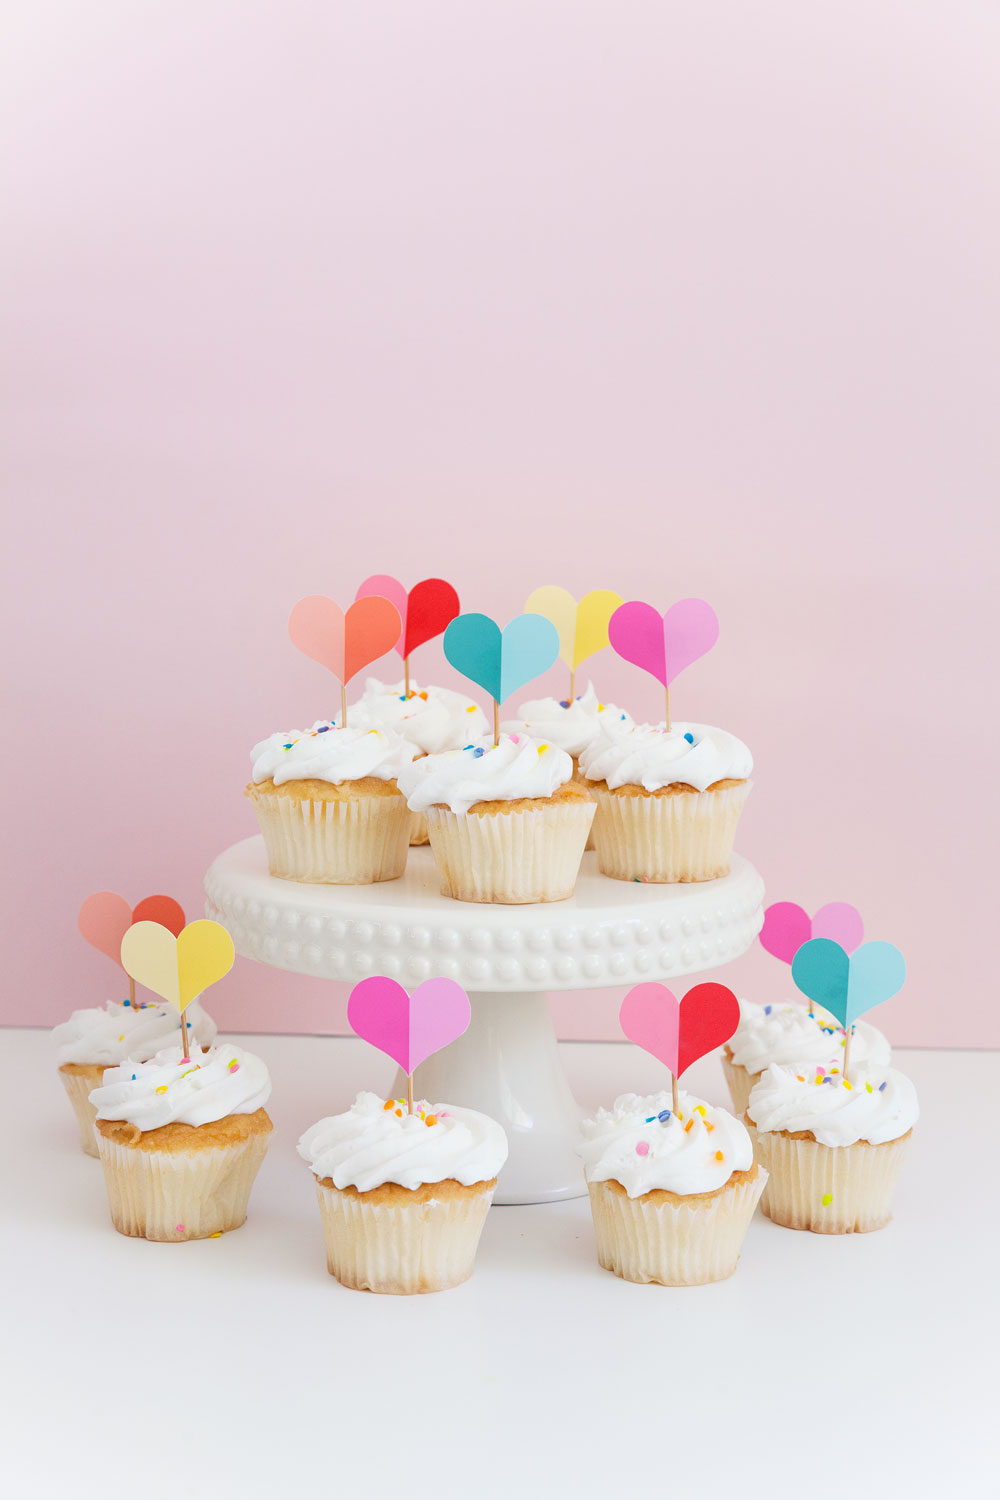 picture regarding Printable Cupcake titled Absolutely free PRINTABLE Centre CUPCAKE TOPPER - Inform Take pleasure in and Bash